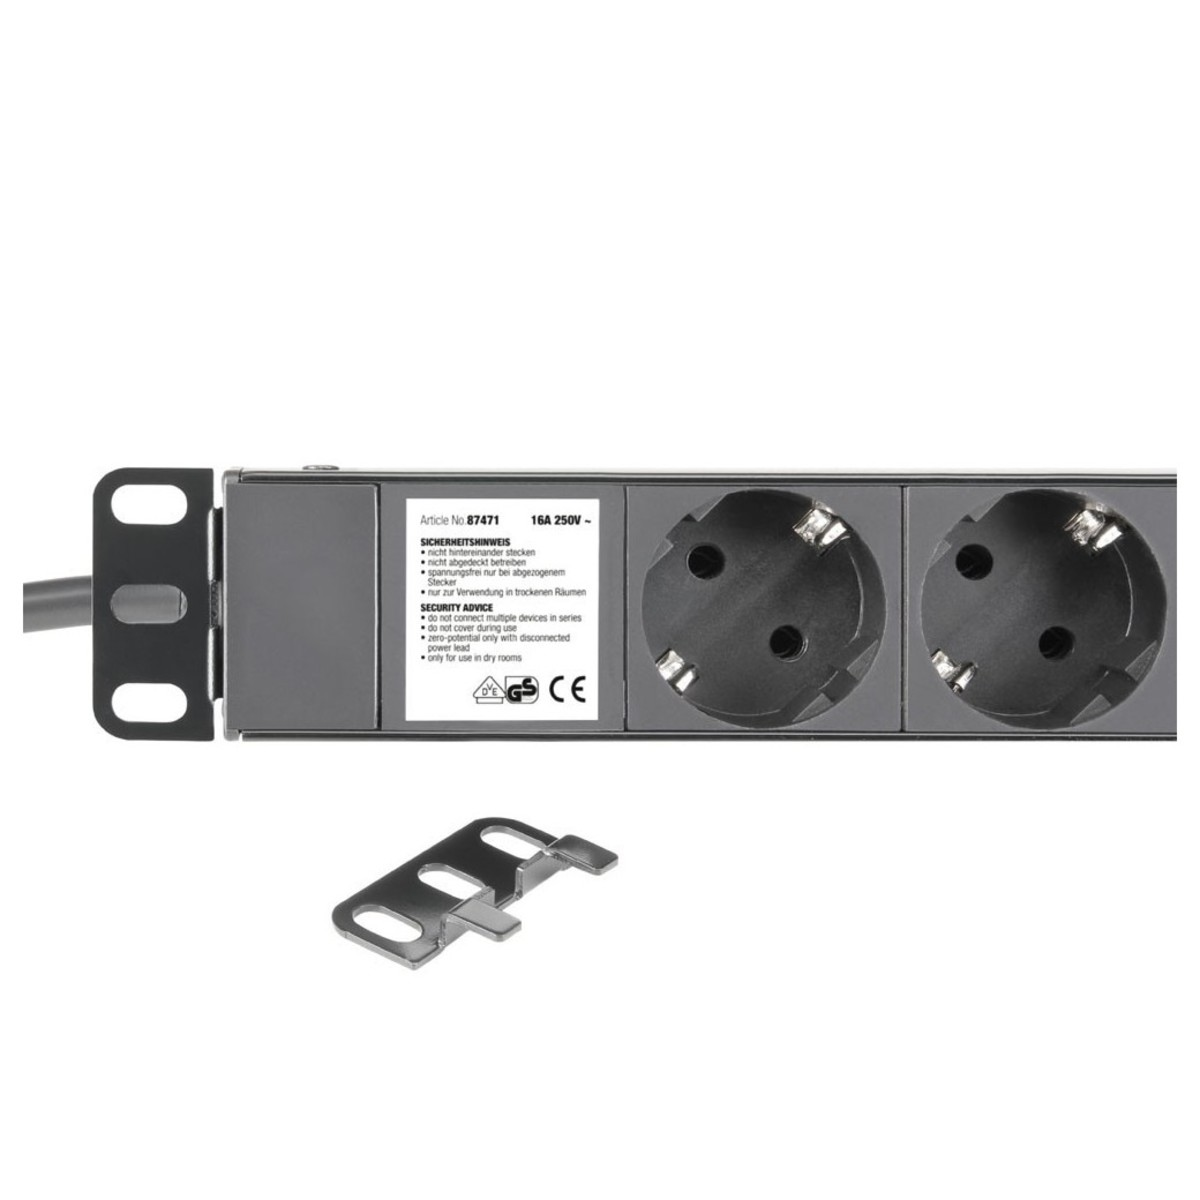 adam hall 19 39 39 eu power strip with usb chargers 8 sockets at gear4music. Black Bedroom Furniture Sets. Home Design Ideas